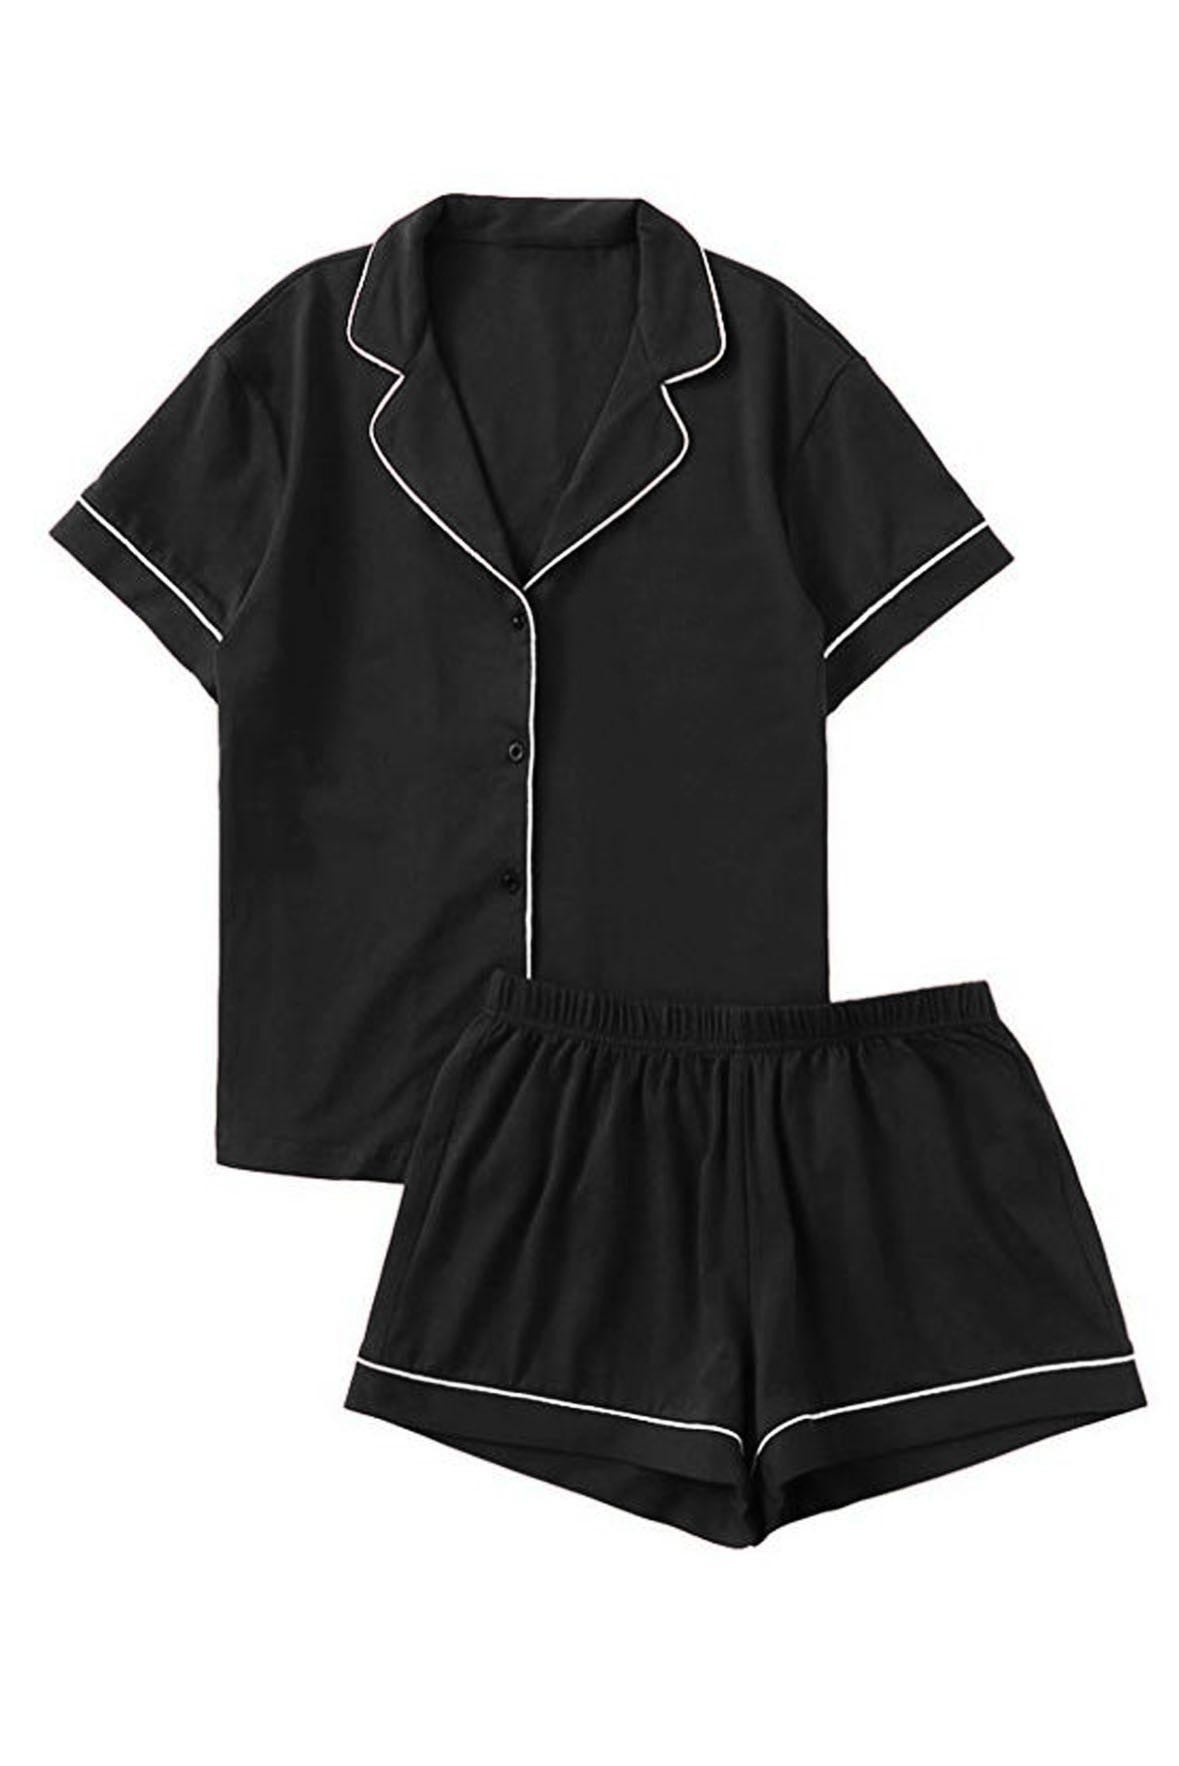 Set of 2 - Sleep Bright Nightwear Outfit Black